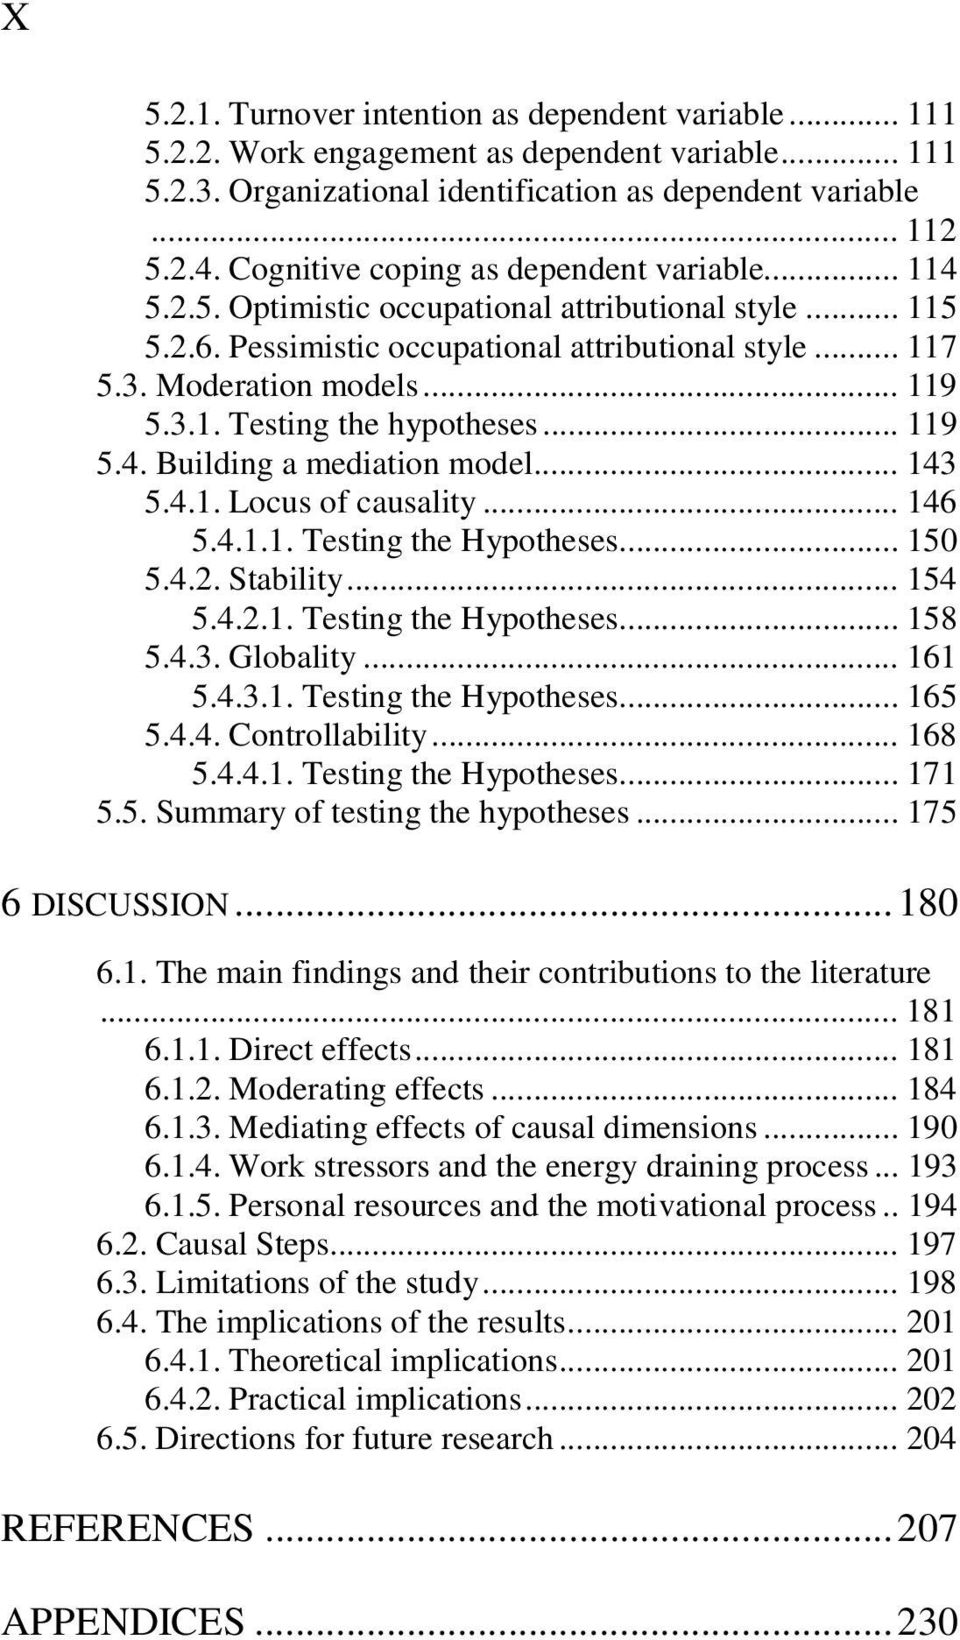 .. 119 5.4. Building a mediation model... 143 5.4.1. Locus of causality... 146 5.4.1.1. Testing the Hypotheses... 150 5.4.2. Stability... 154 5.4.2.1. Testing the Hypotheses... 158 5.4.3. Globality.